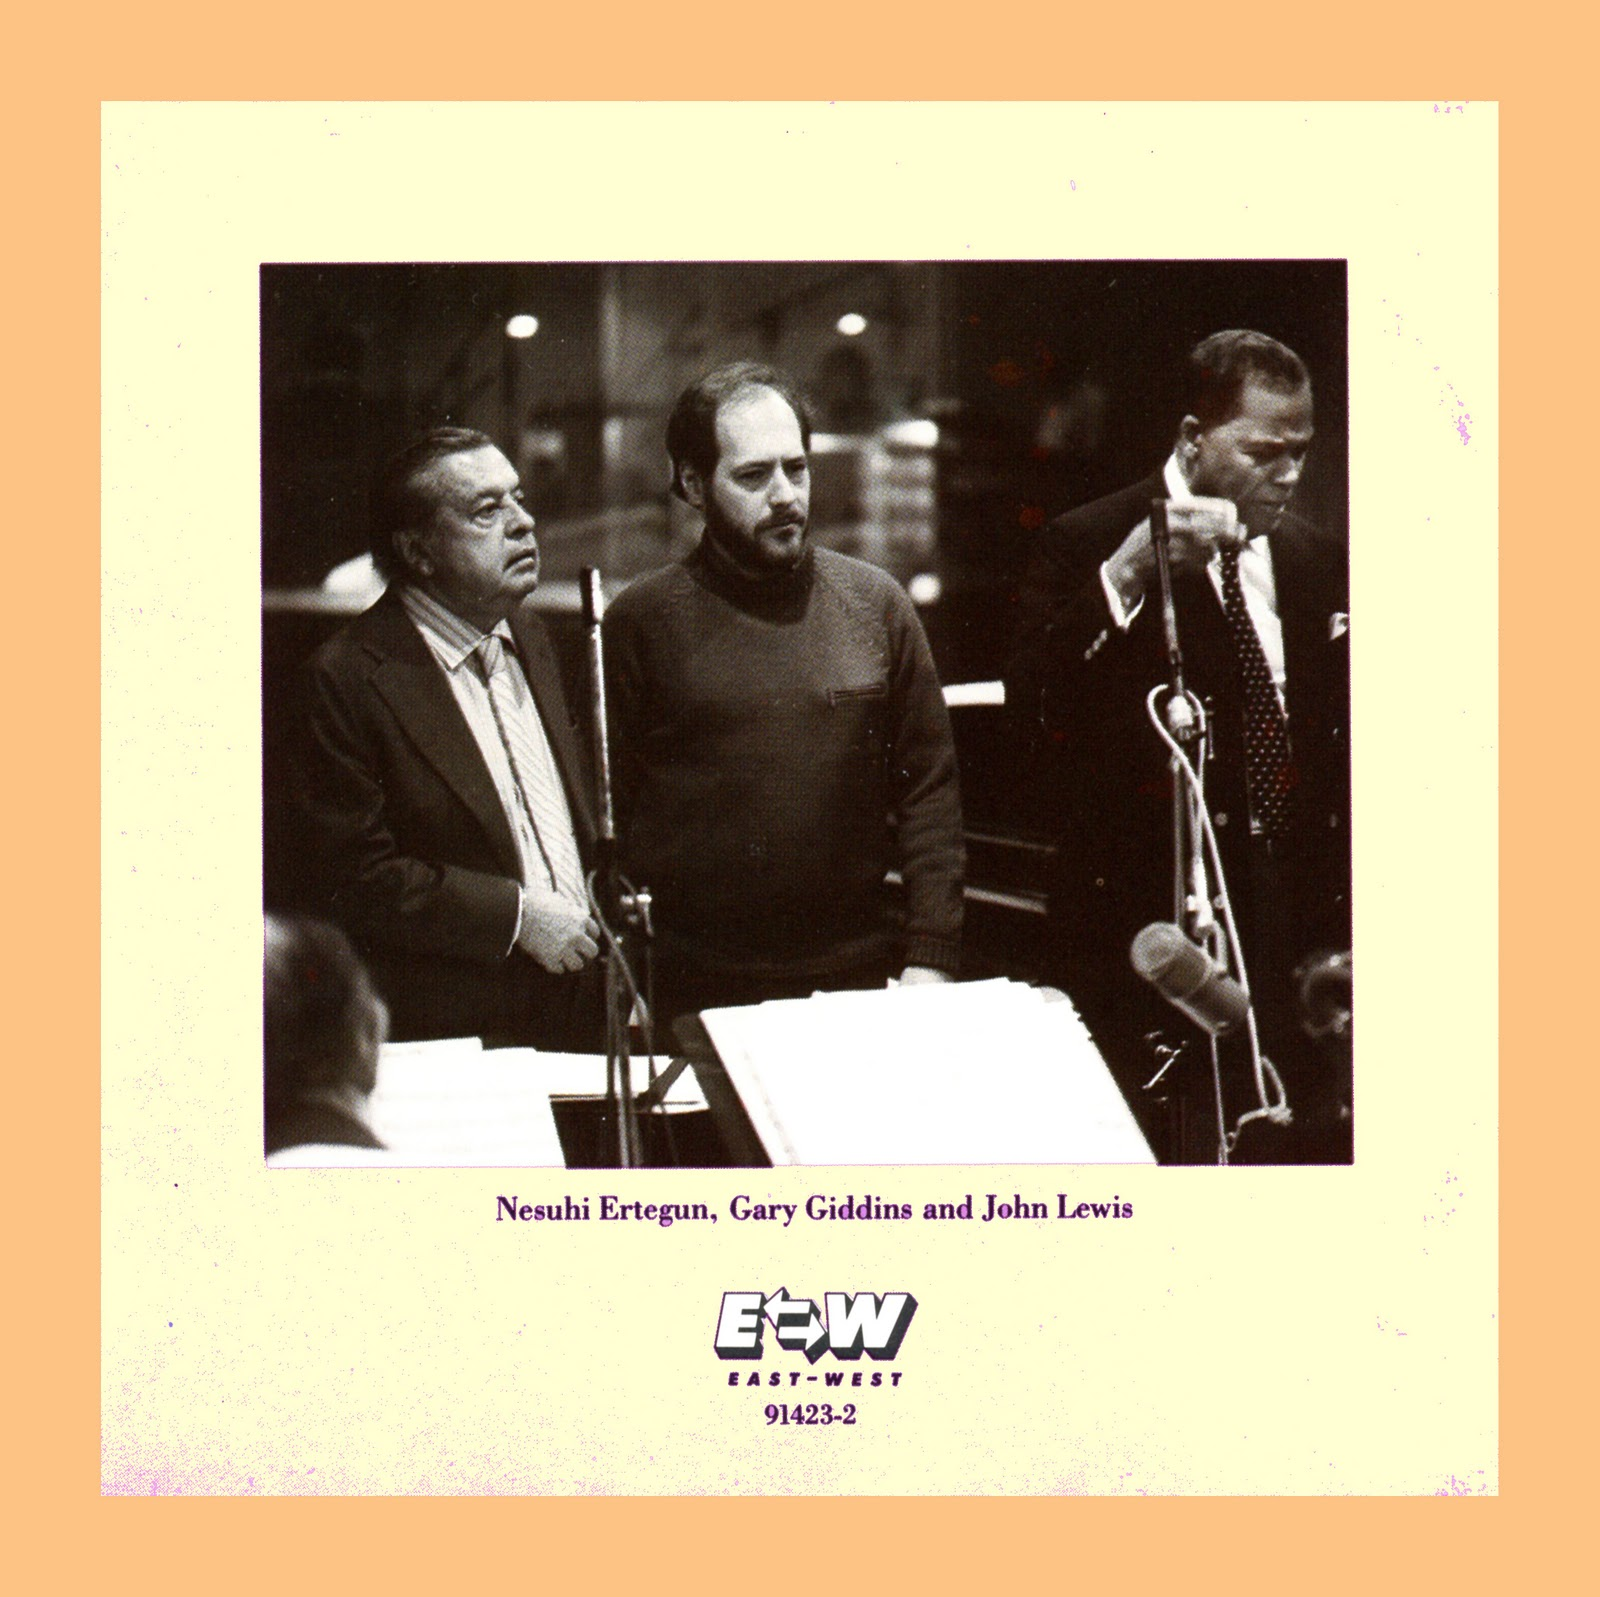 jazz profiles the american jazz orchestra a gift from gary john ldquoin 1985 when jazz critic gary giddins was told by producer roberta swann that she was thinking of putting together a modern classical ensemble